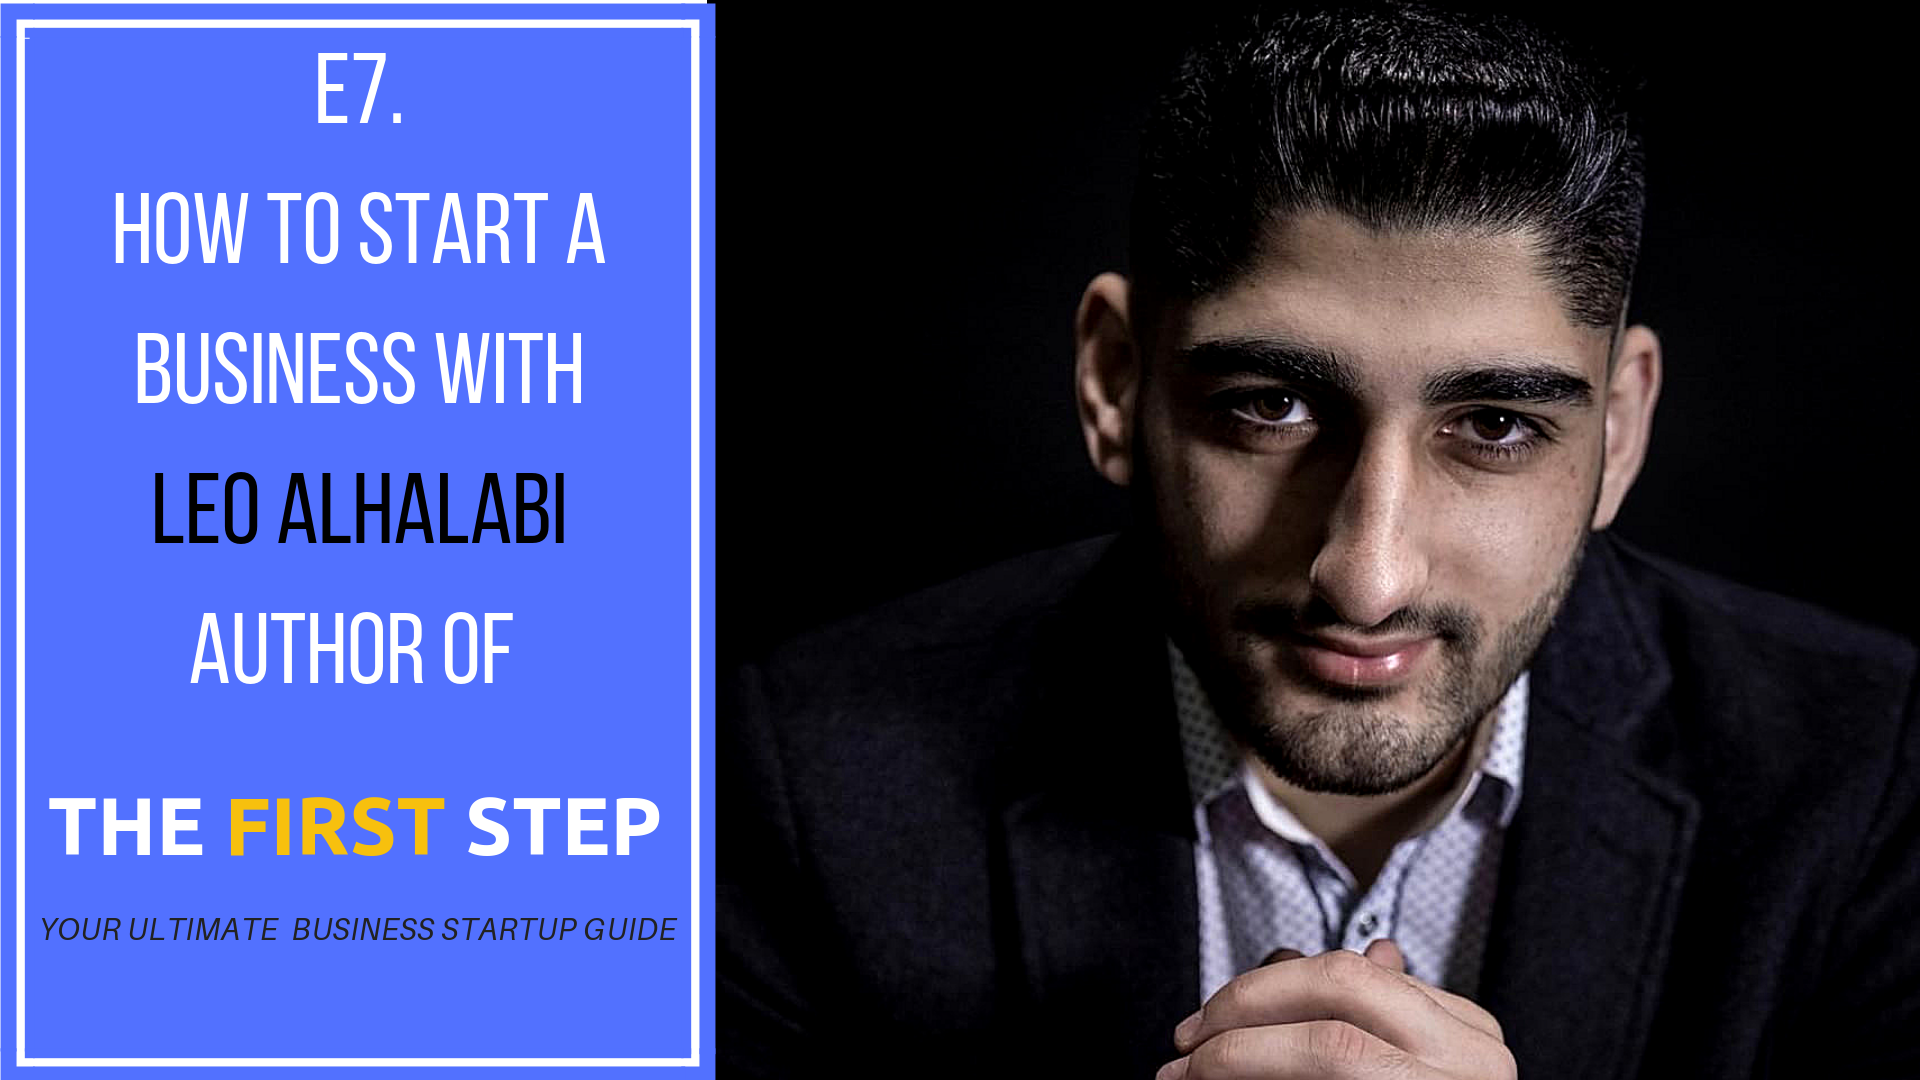 E7. How to start a businss with (Leo Alhalabi) (1).png